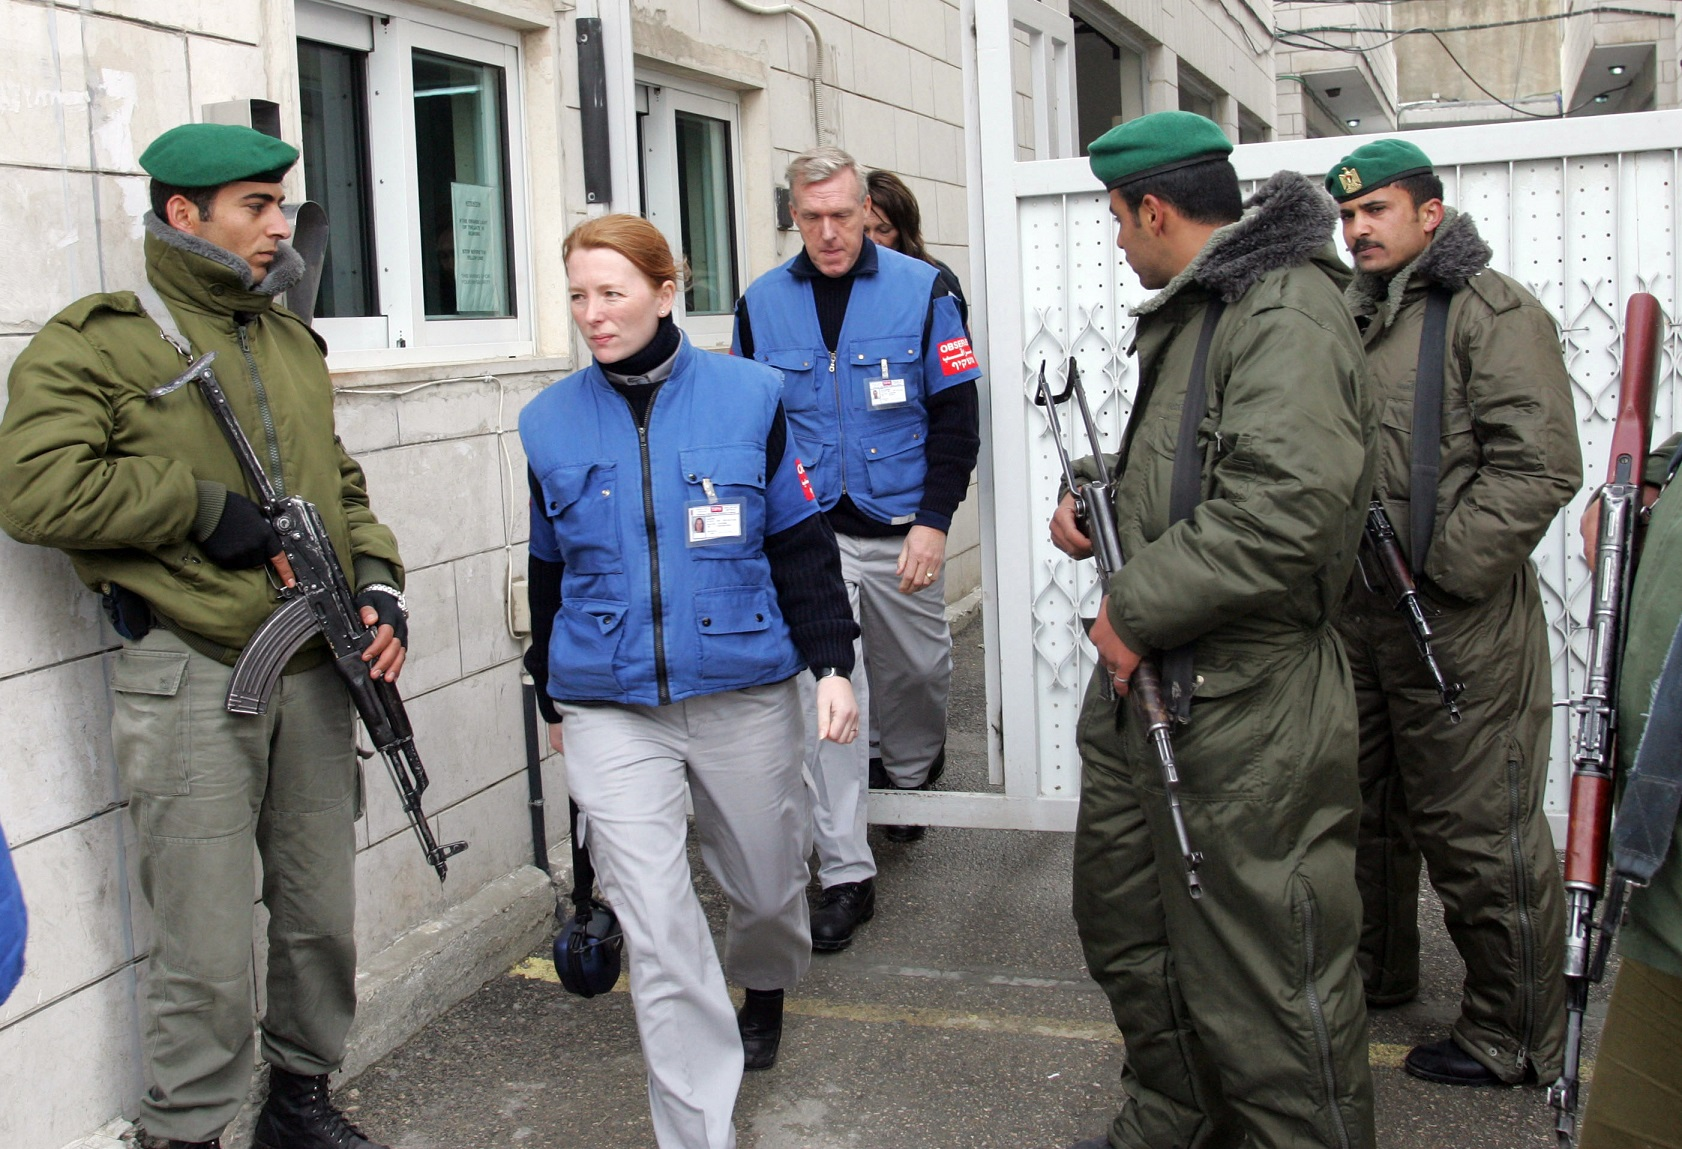 International observers from TIPH walk past Palestinian security officers in Hebron